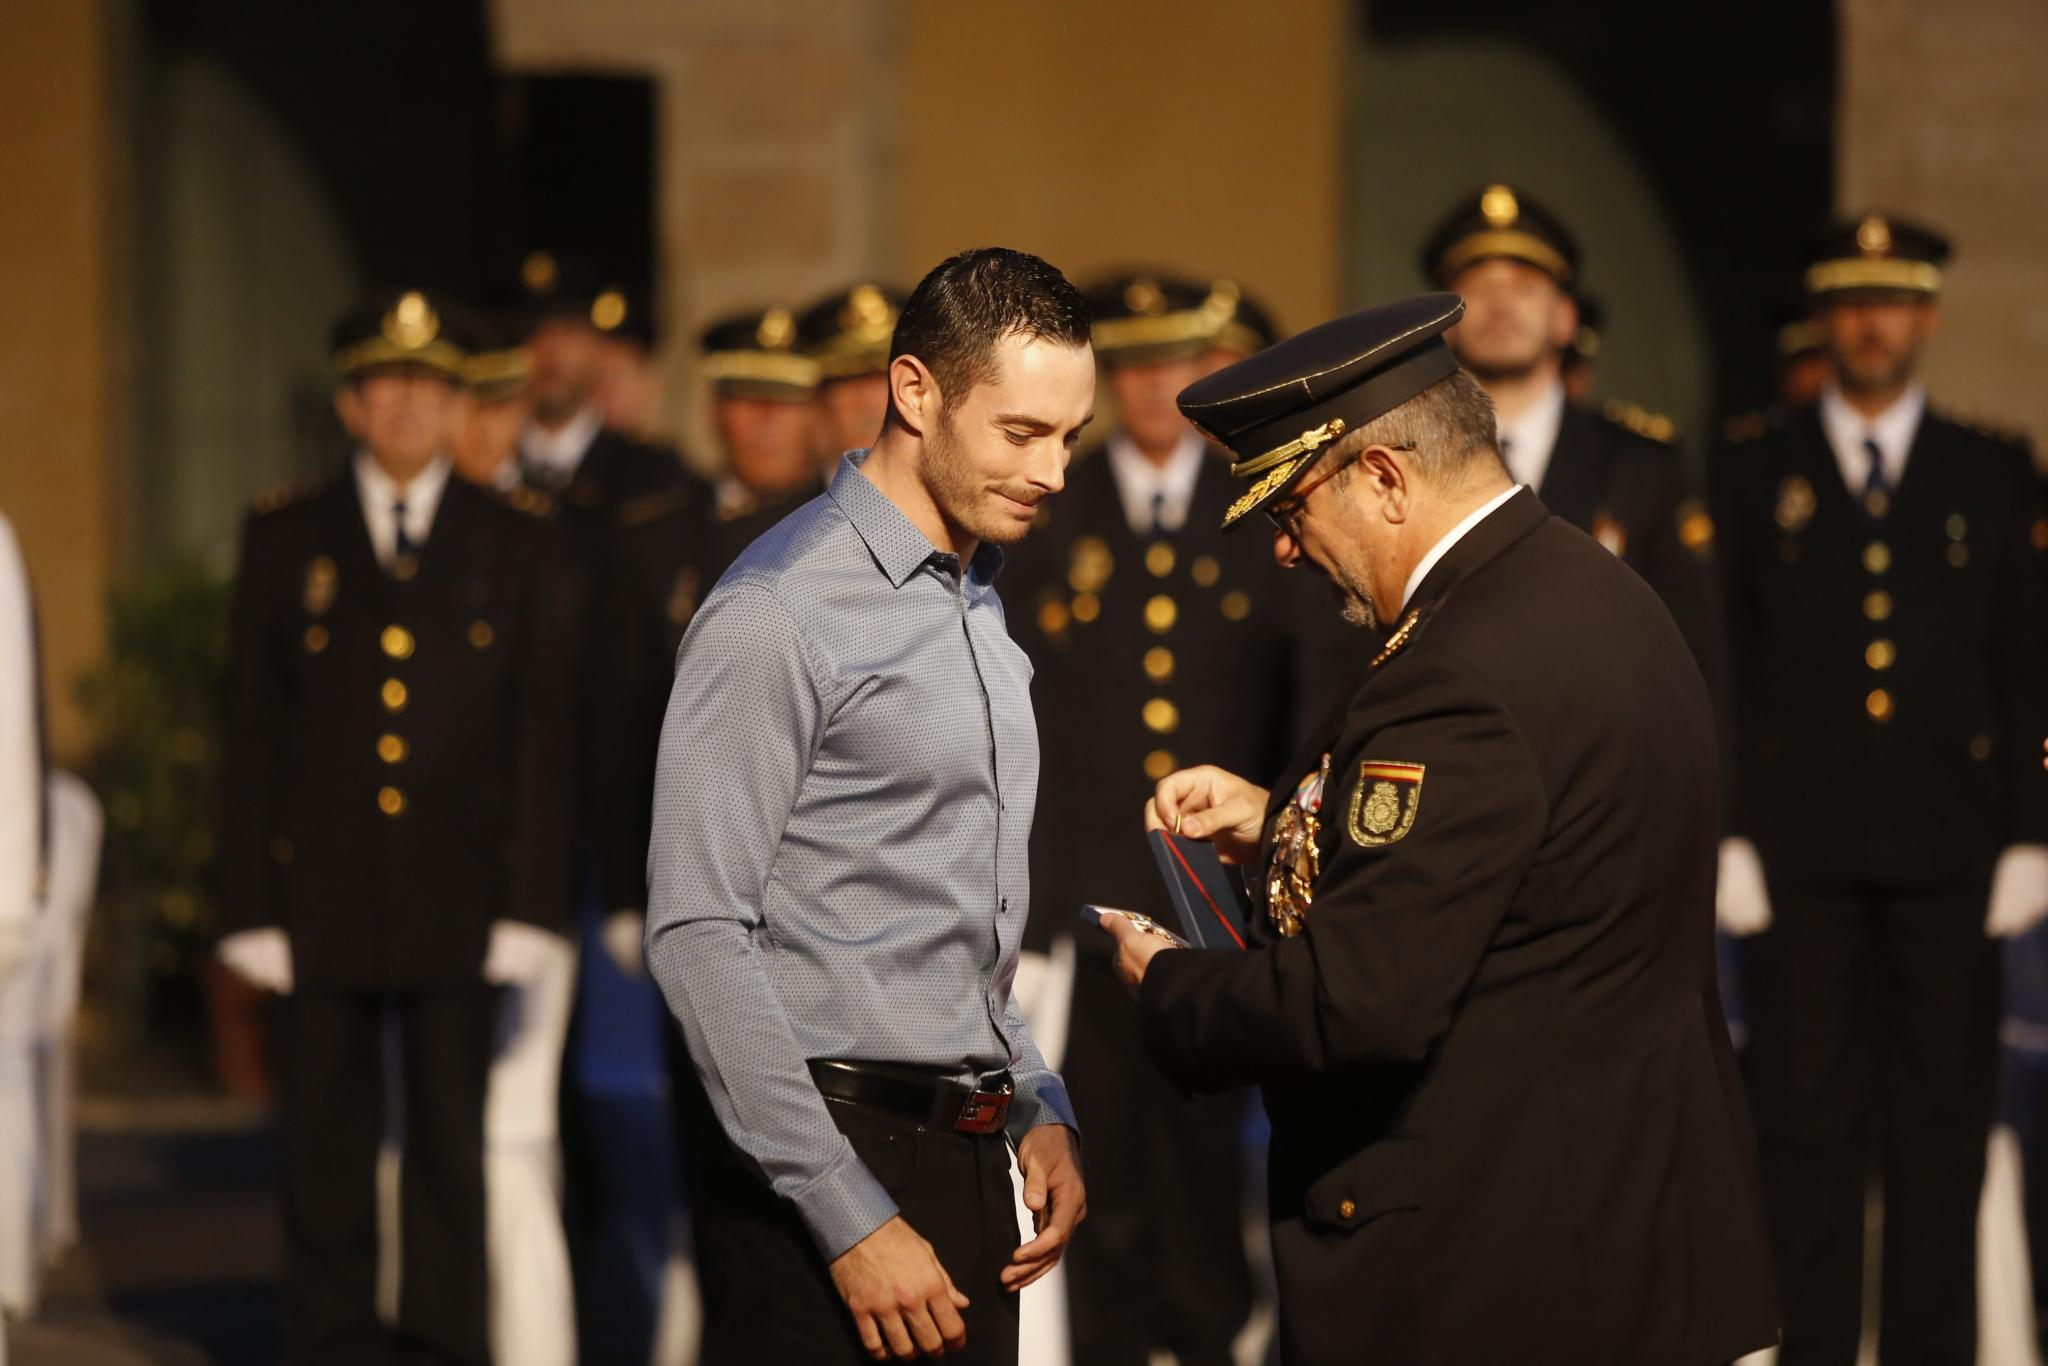 José Mota Barea's son, who in October 2015 received a police merit medal on behalf of his father.